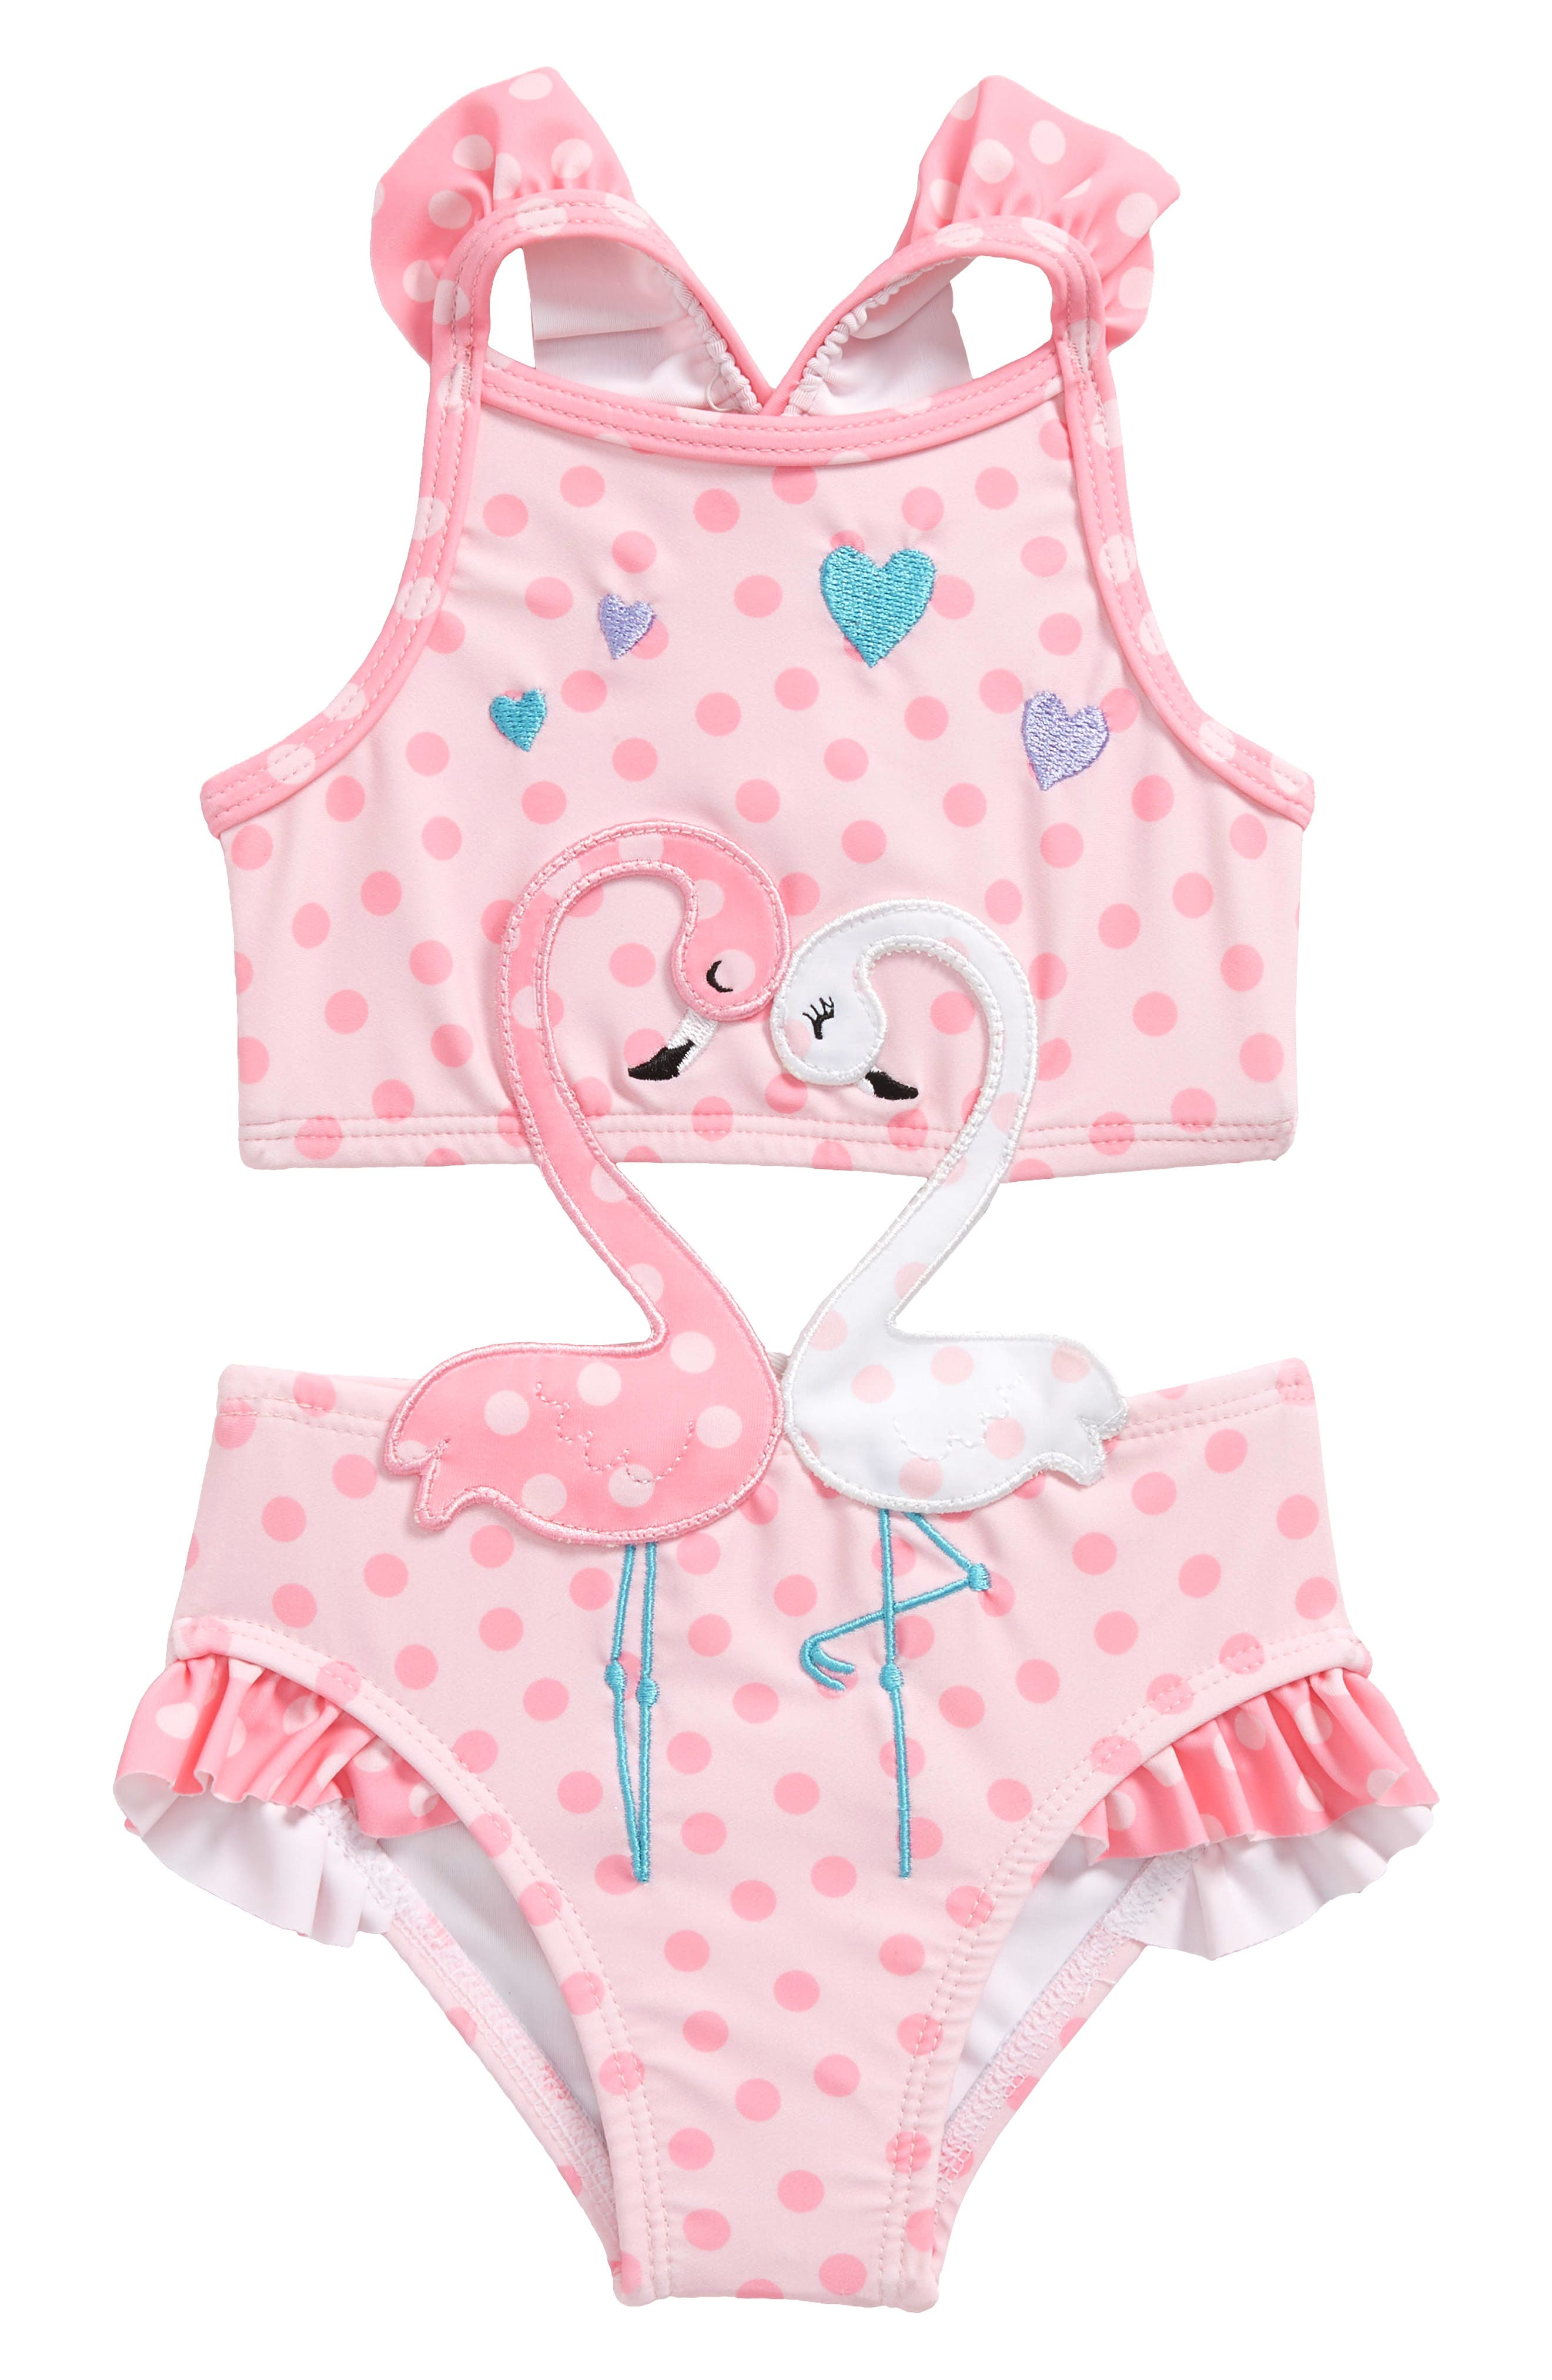 Flamingos in Love Cutout One-Piece Swimsuit,                             Main thumbnail 1, color,                             Pink